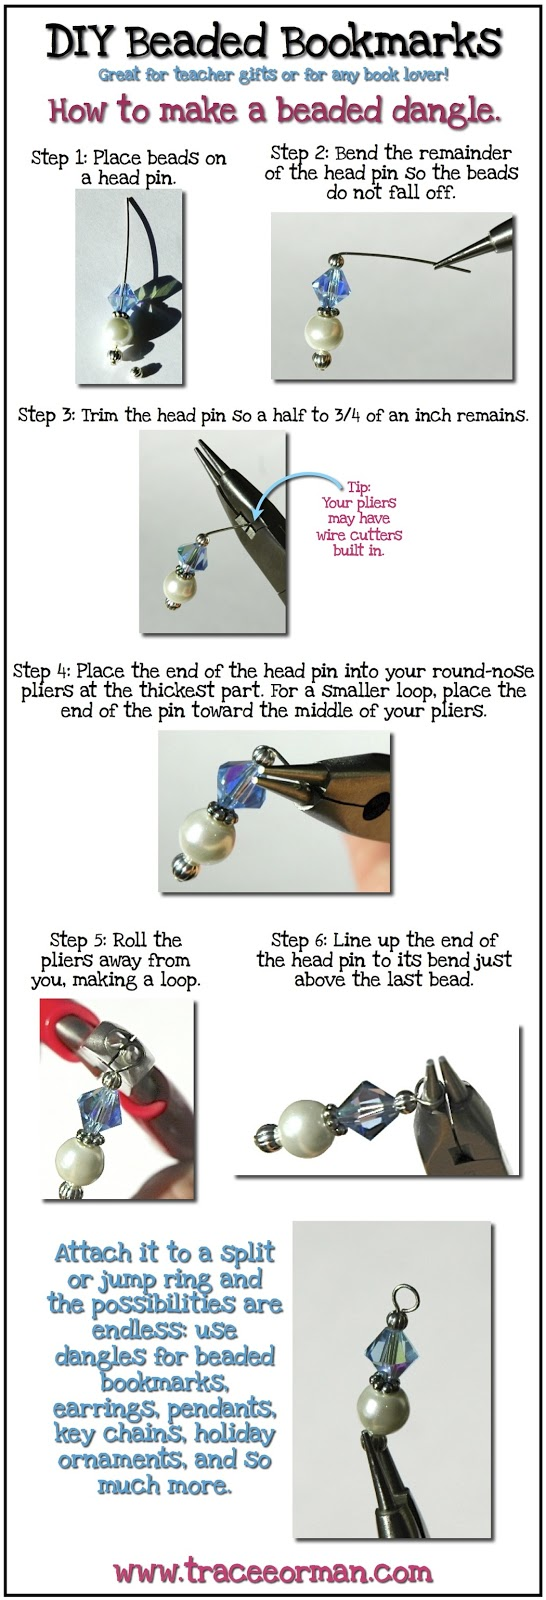 How to make a beaded dangle DIY www.traceeorman.com